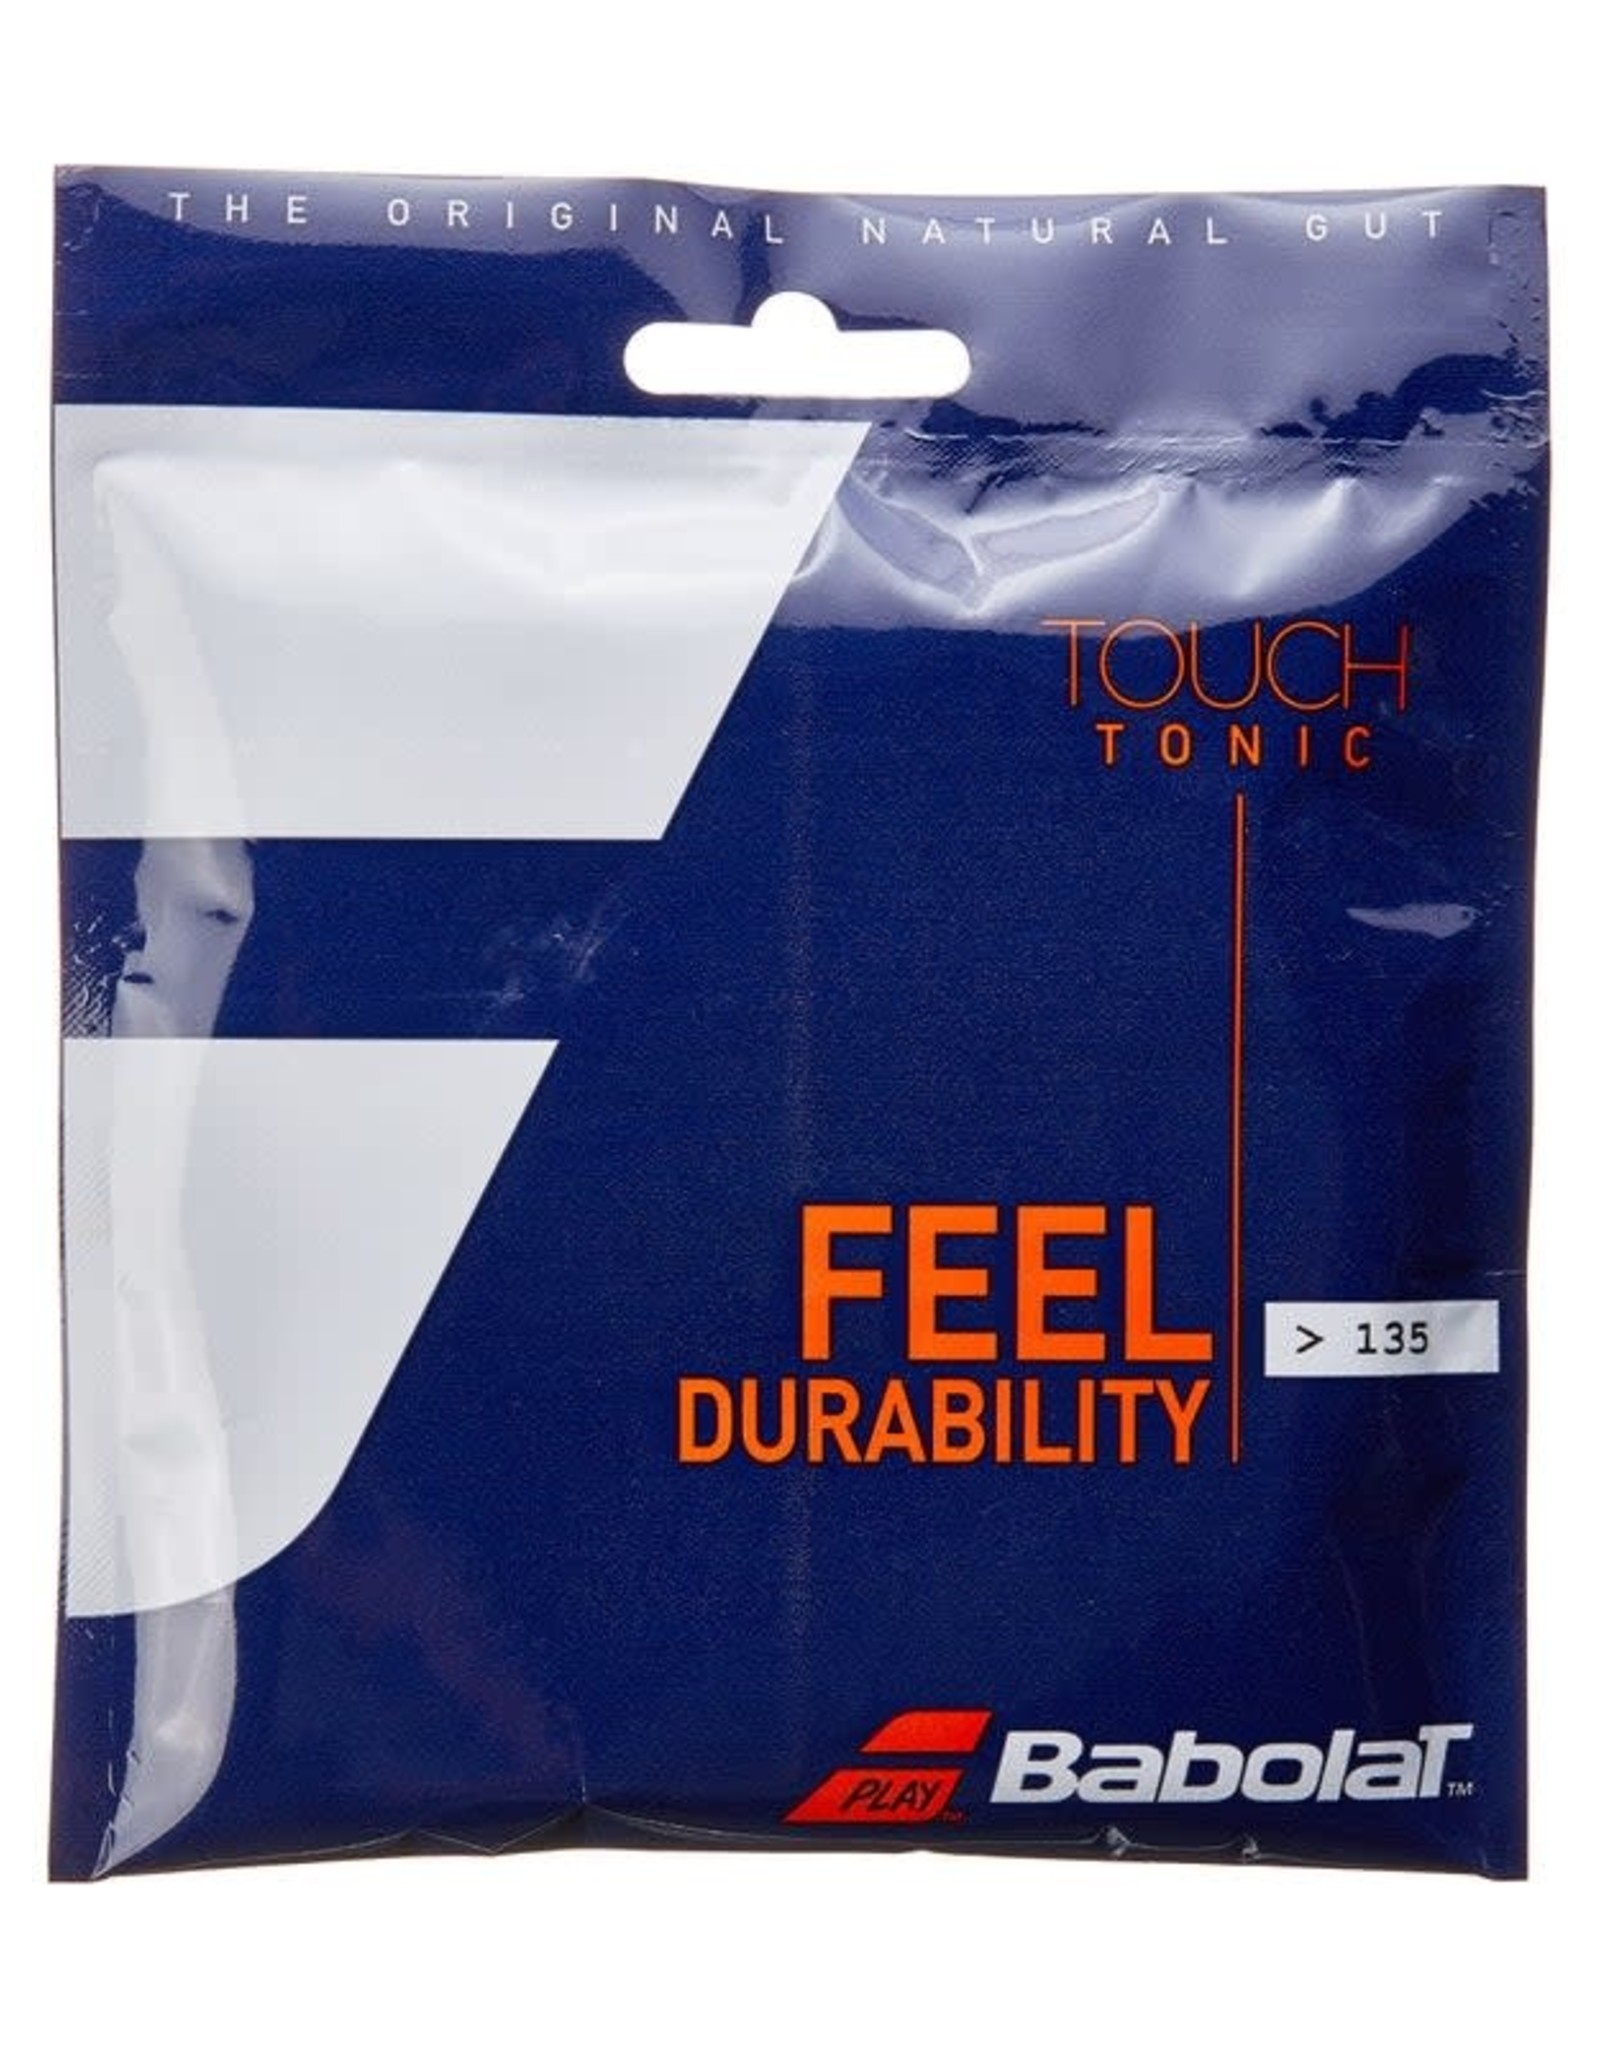 Babolat Babolat Touch Tonic Natural Gut 15L String